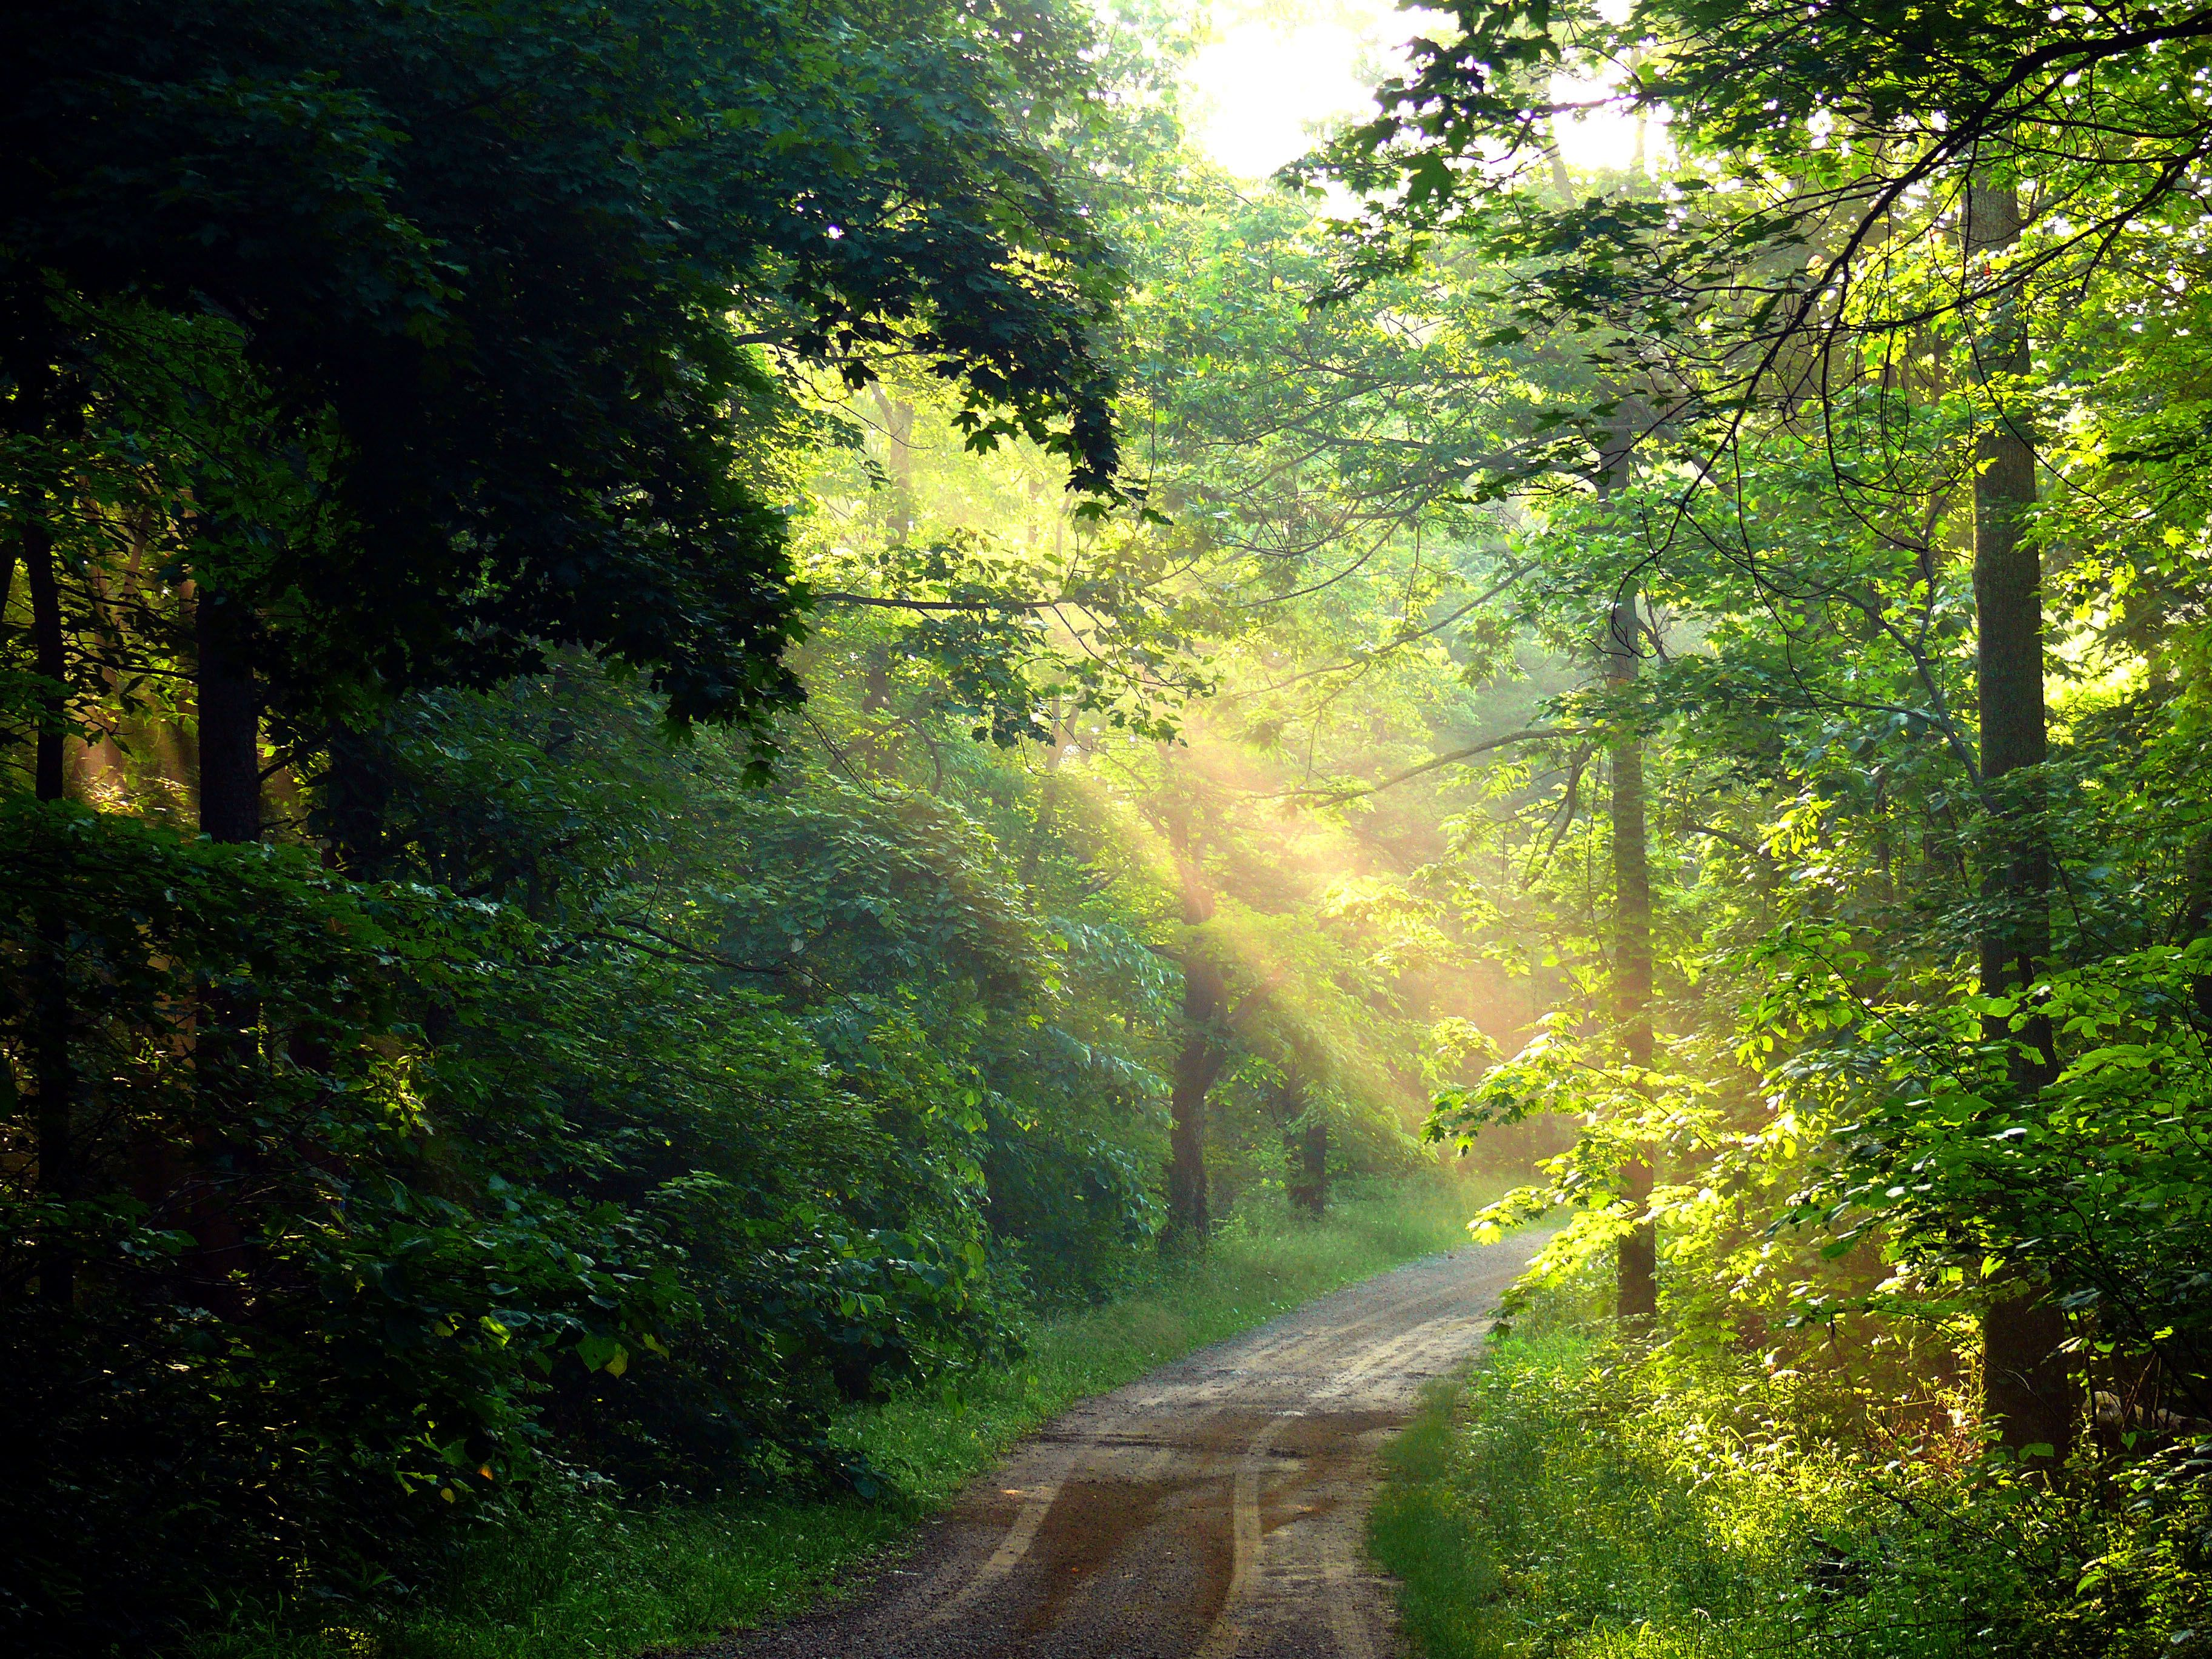 A beam of sunlight shines through the green foliage of the forest, over a small dirt country road.